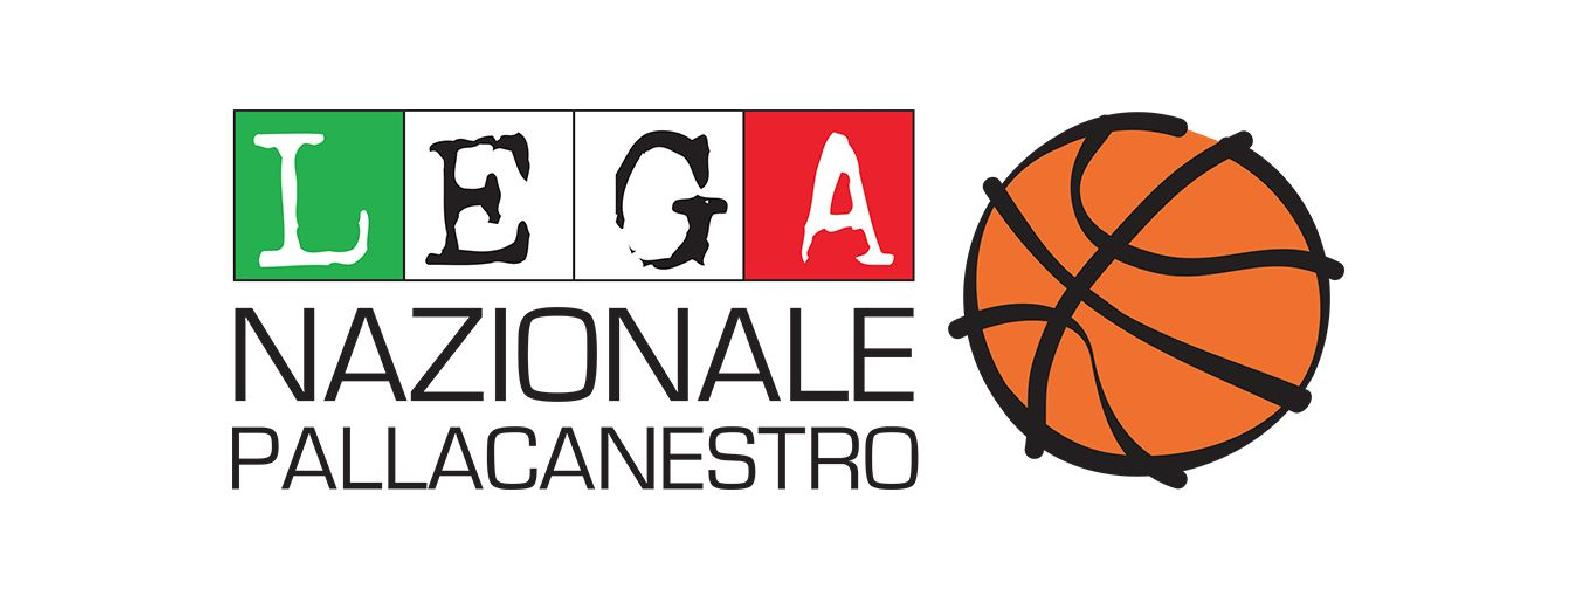 https://www.basketmarche.it/immagini_articoli/06-01-2019/accoppiamenti-final-eight-coppa-italia-serie-nazionale-600.jpg